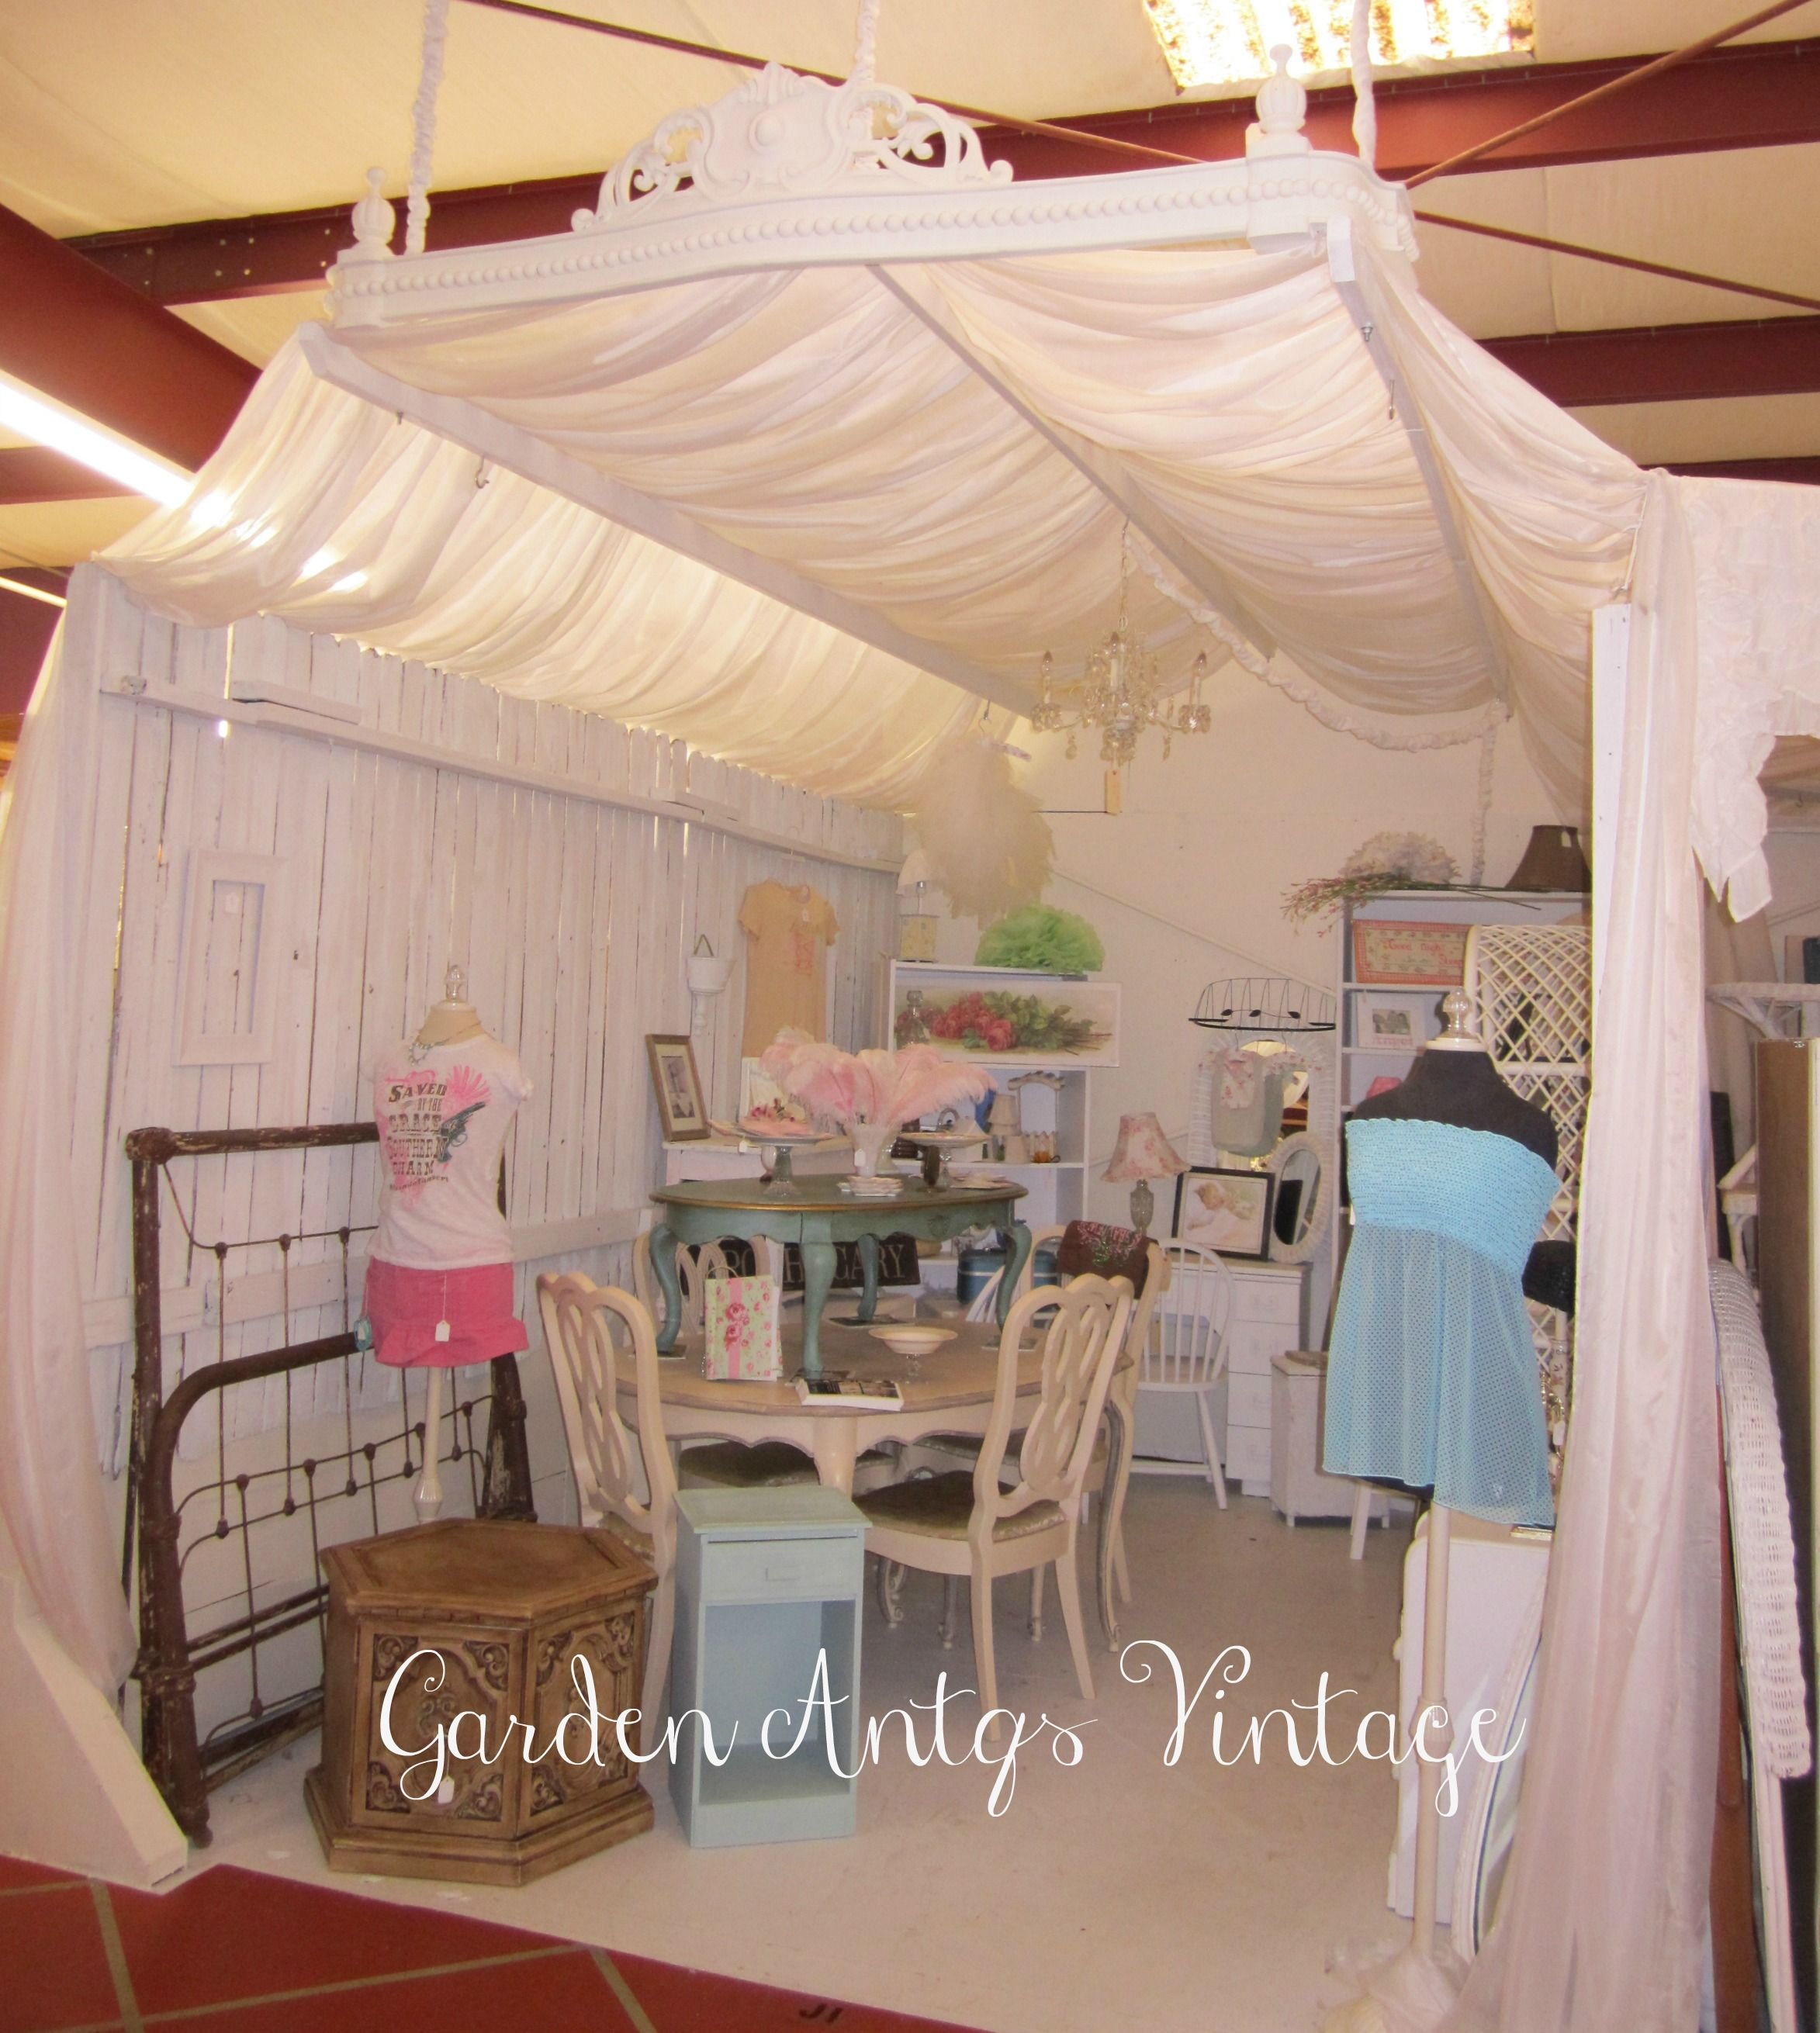 The Tent Curtain Is A Cool Way To Frame A Booth Michella Marie S